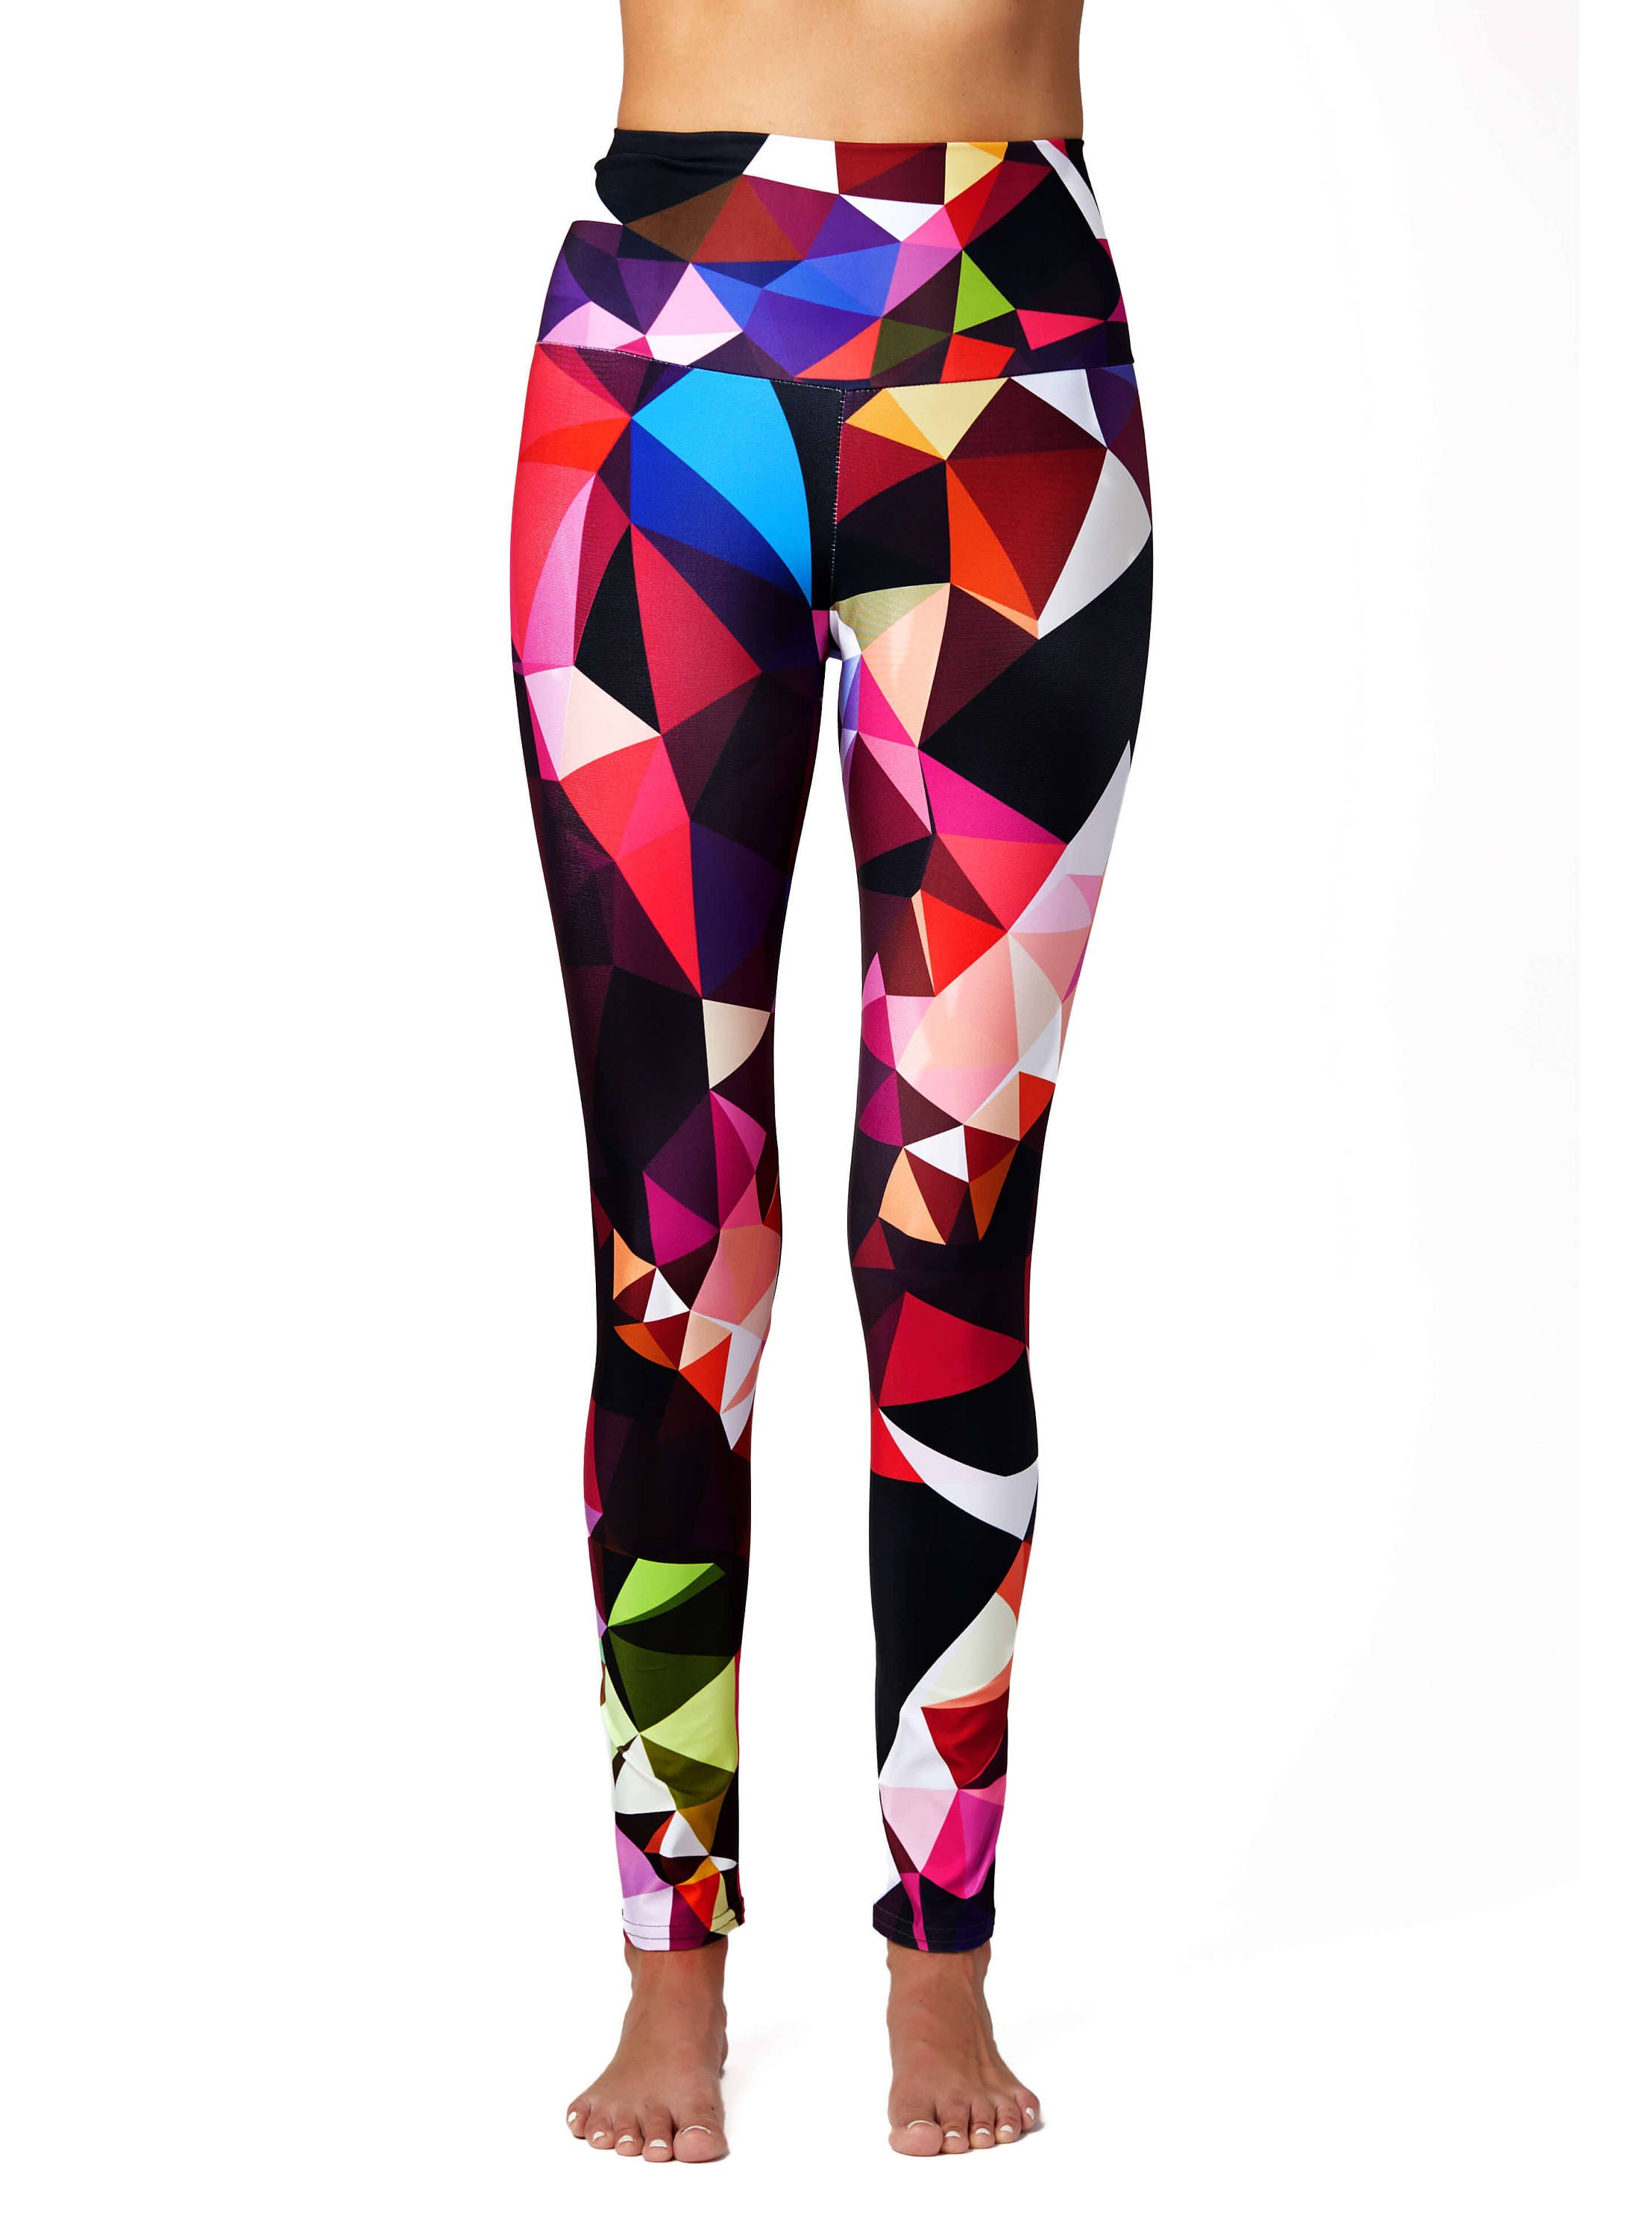 Master Every Pose with Yoga Pants & Yoga Leggings Bend and flex in incredible comfort with women's best yoga pants and yoga leggings from DICK'S Sporting Goods. Browse yoga pants up to 75% off at prices you'll love.